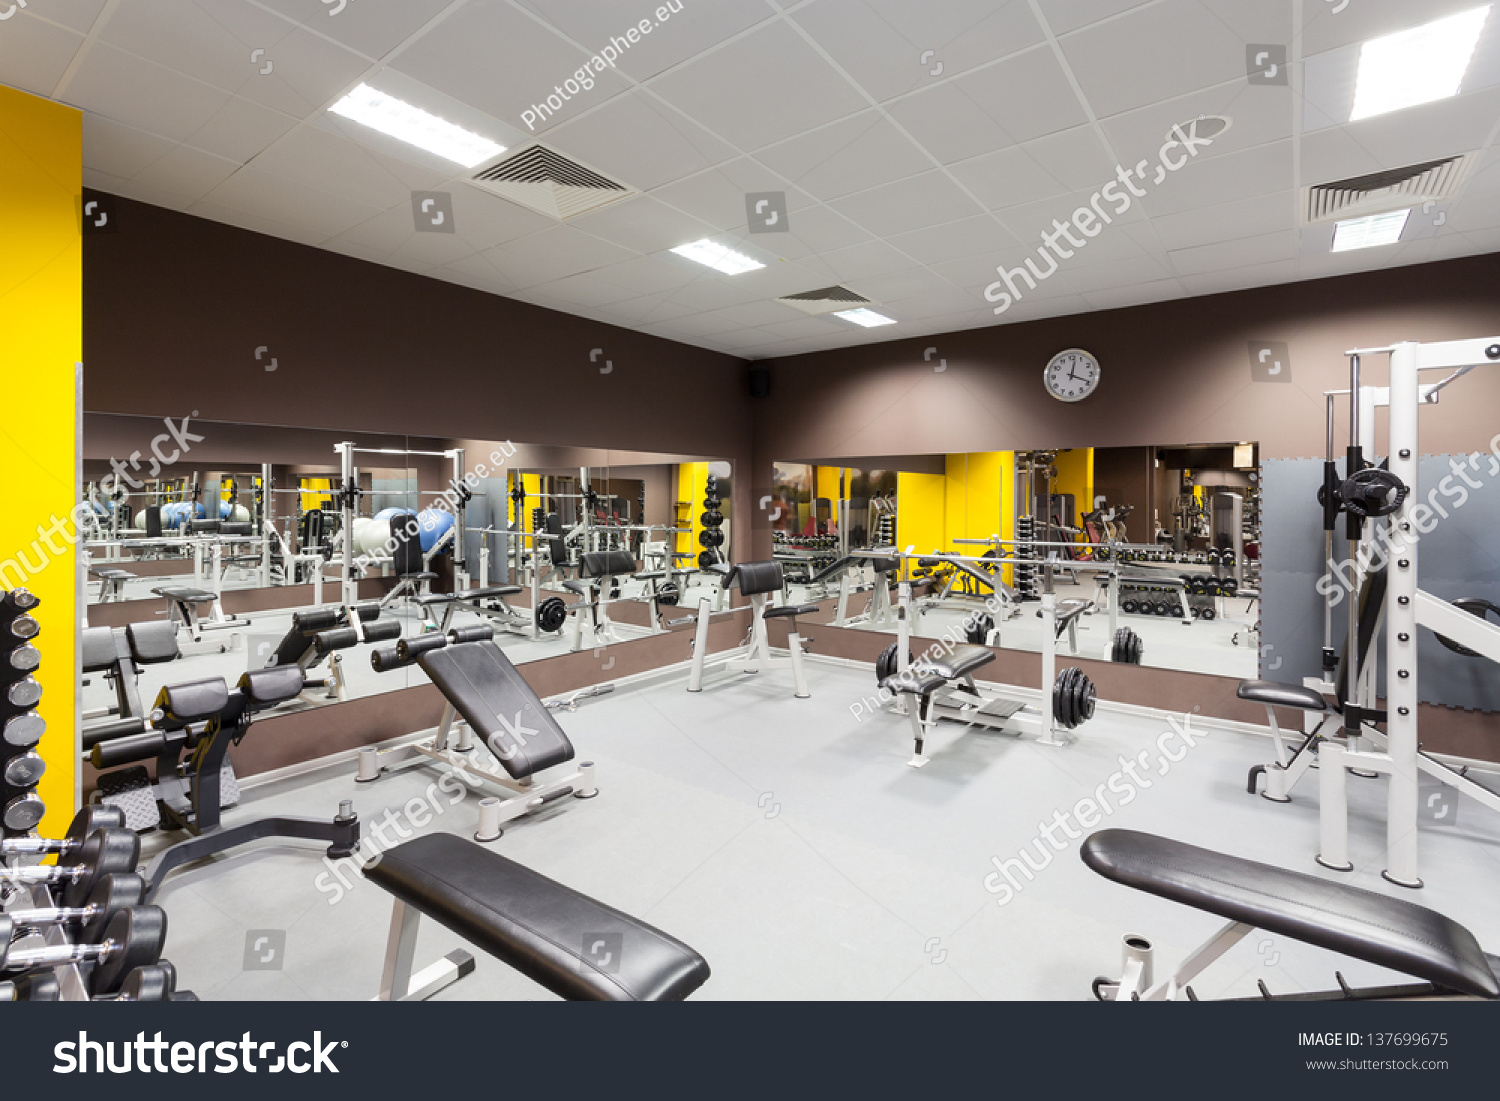 Interior new modern gym equipment stock photo 137699675 for Interior news